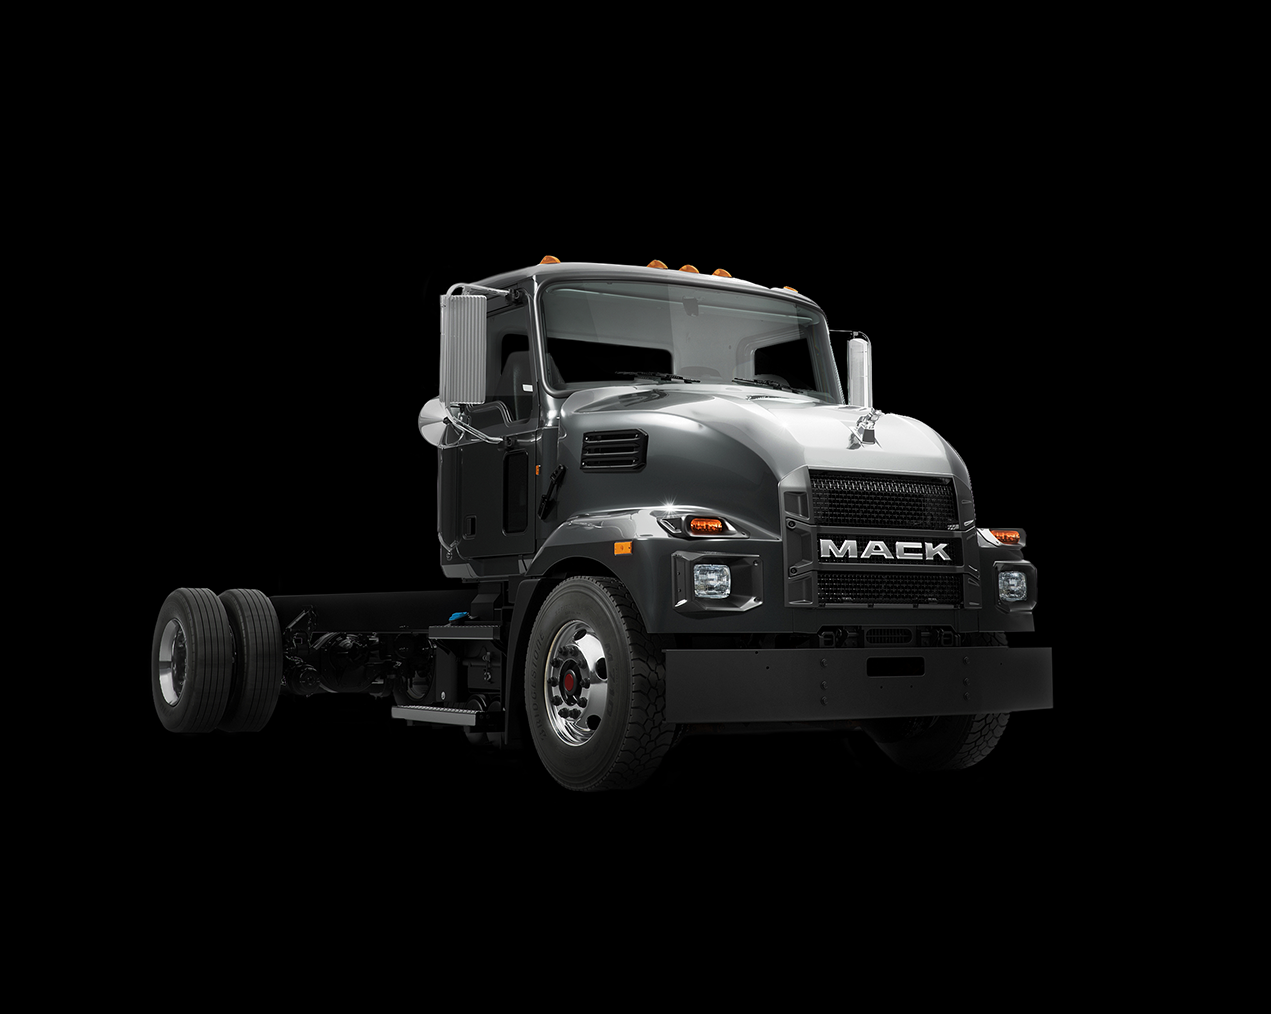 A black Mack MD Series truck with searchable exterior features.